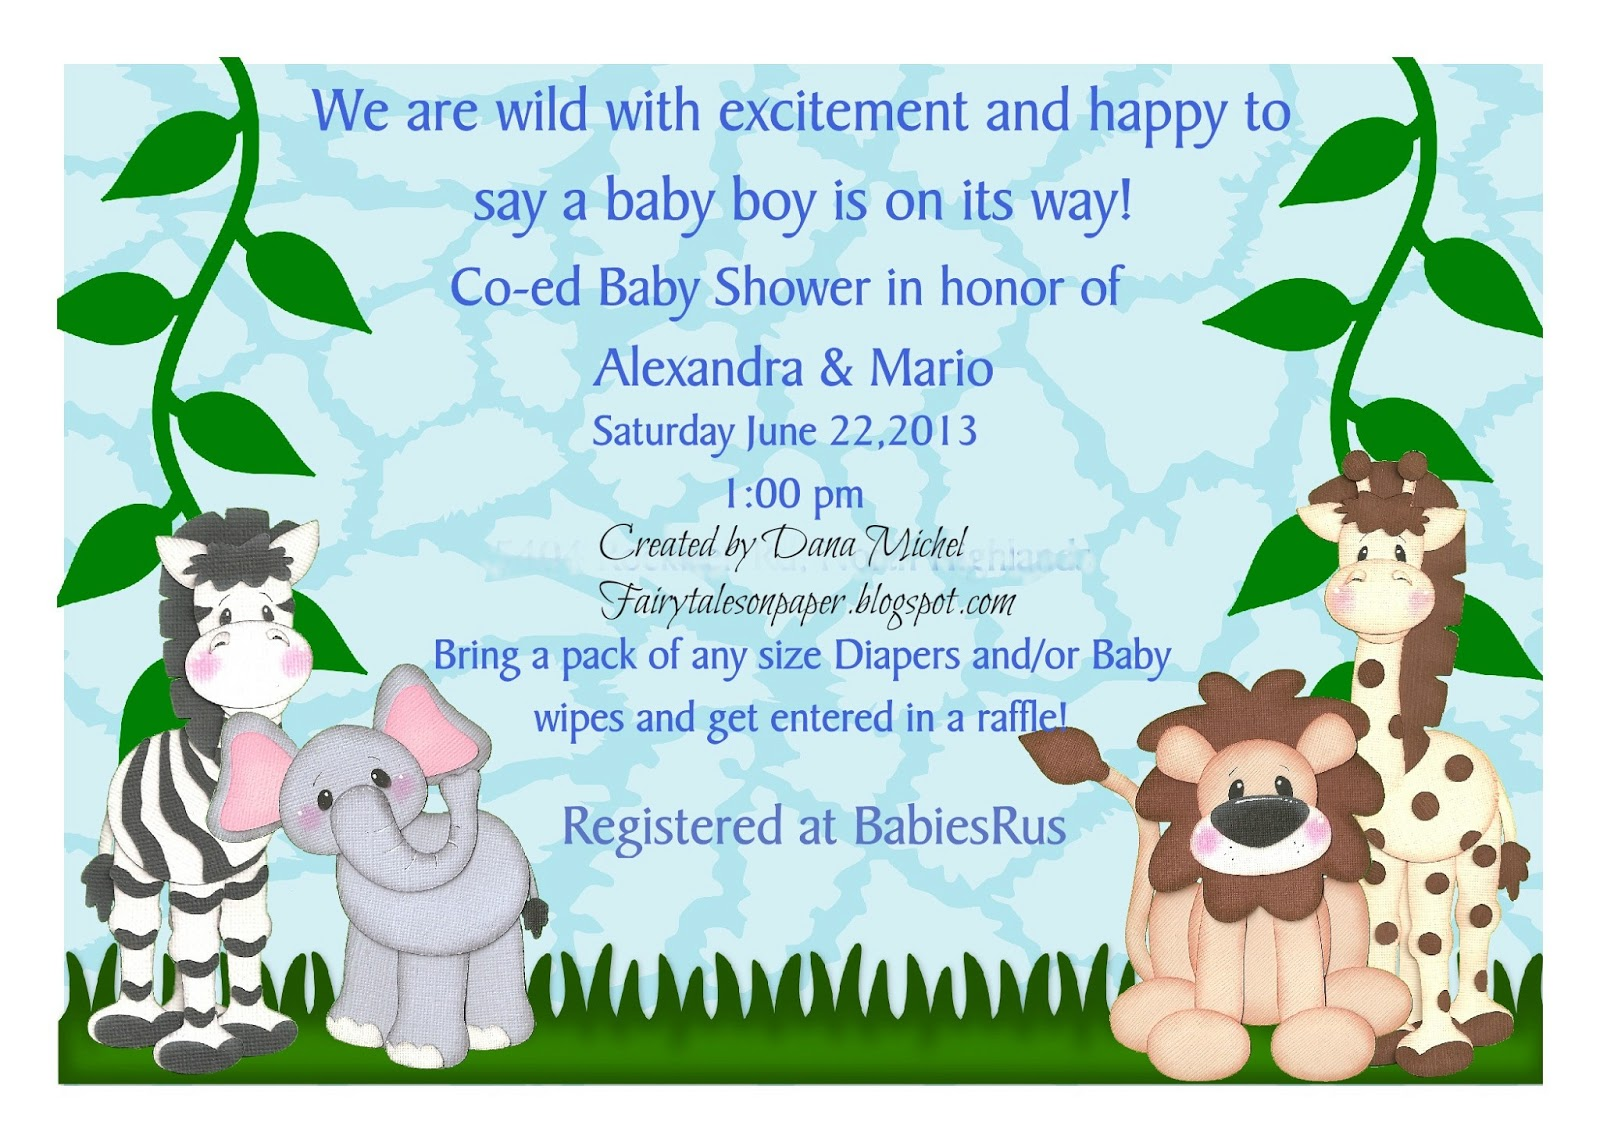 Fairy tales on paper baby shower invitation and guest book baby shower invitation and guest book stopboris Choice Image